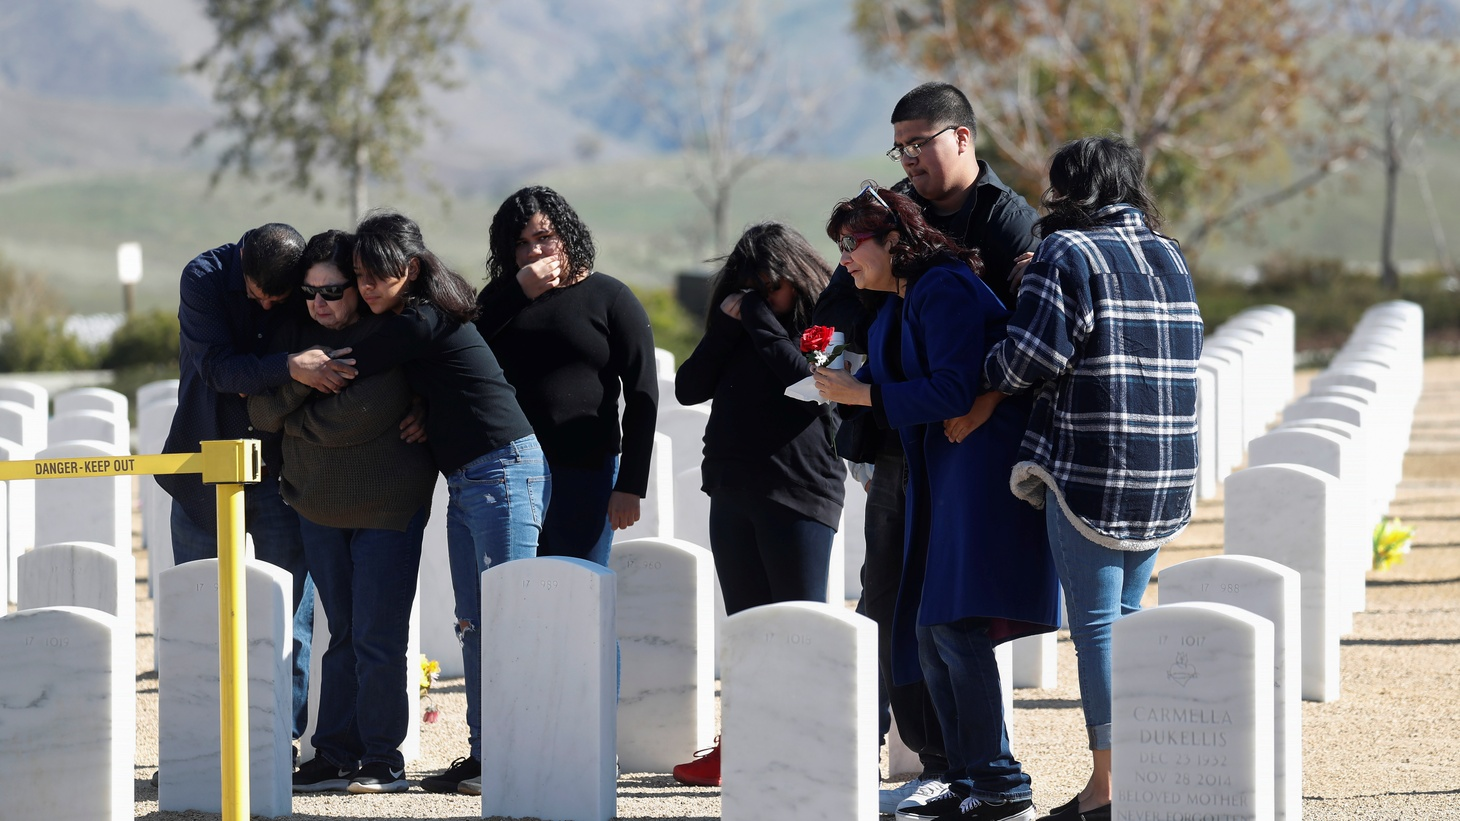 Members of the Gutierrez family mourn graveside, during a non customary military burial service amid an outbreak of COVID-19, for Robert Gutierrez, who was given a Purple Heart award for serving in the Vietnam War and passed away of a non-coronavirus related death, at the Bakersfield National Cemetery in Arvin, California, April 3, 2020.